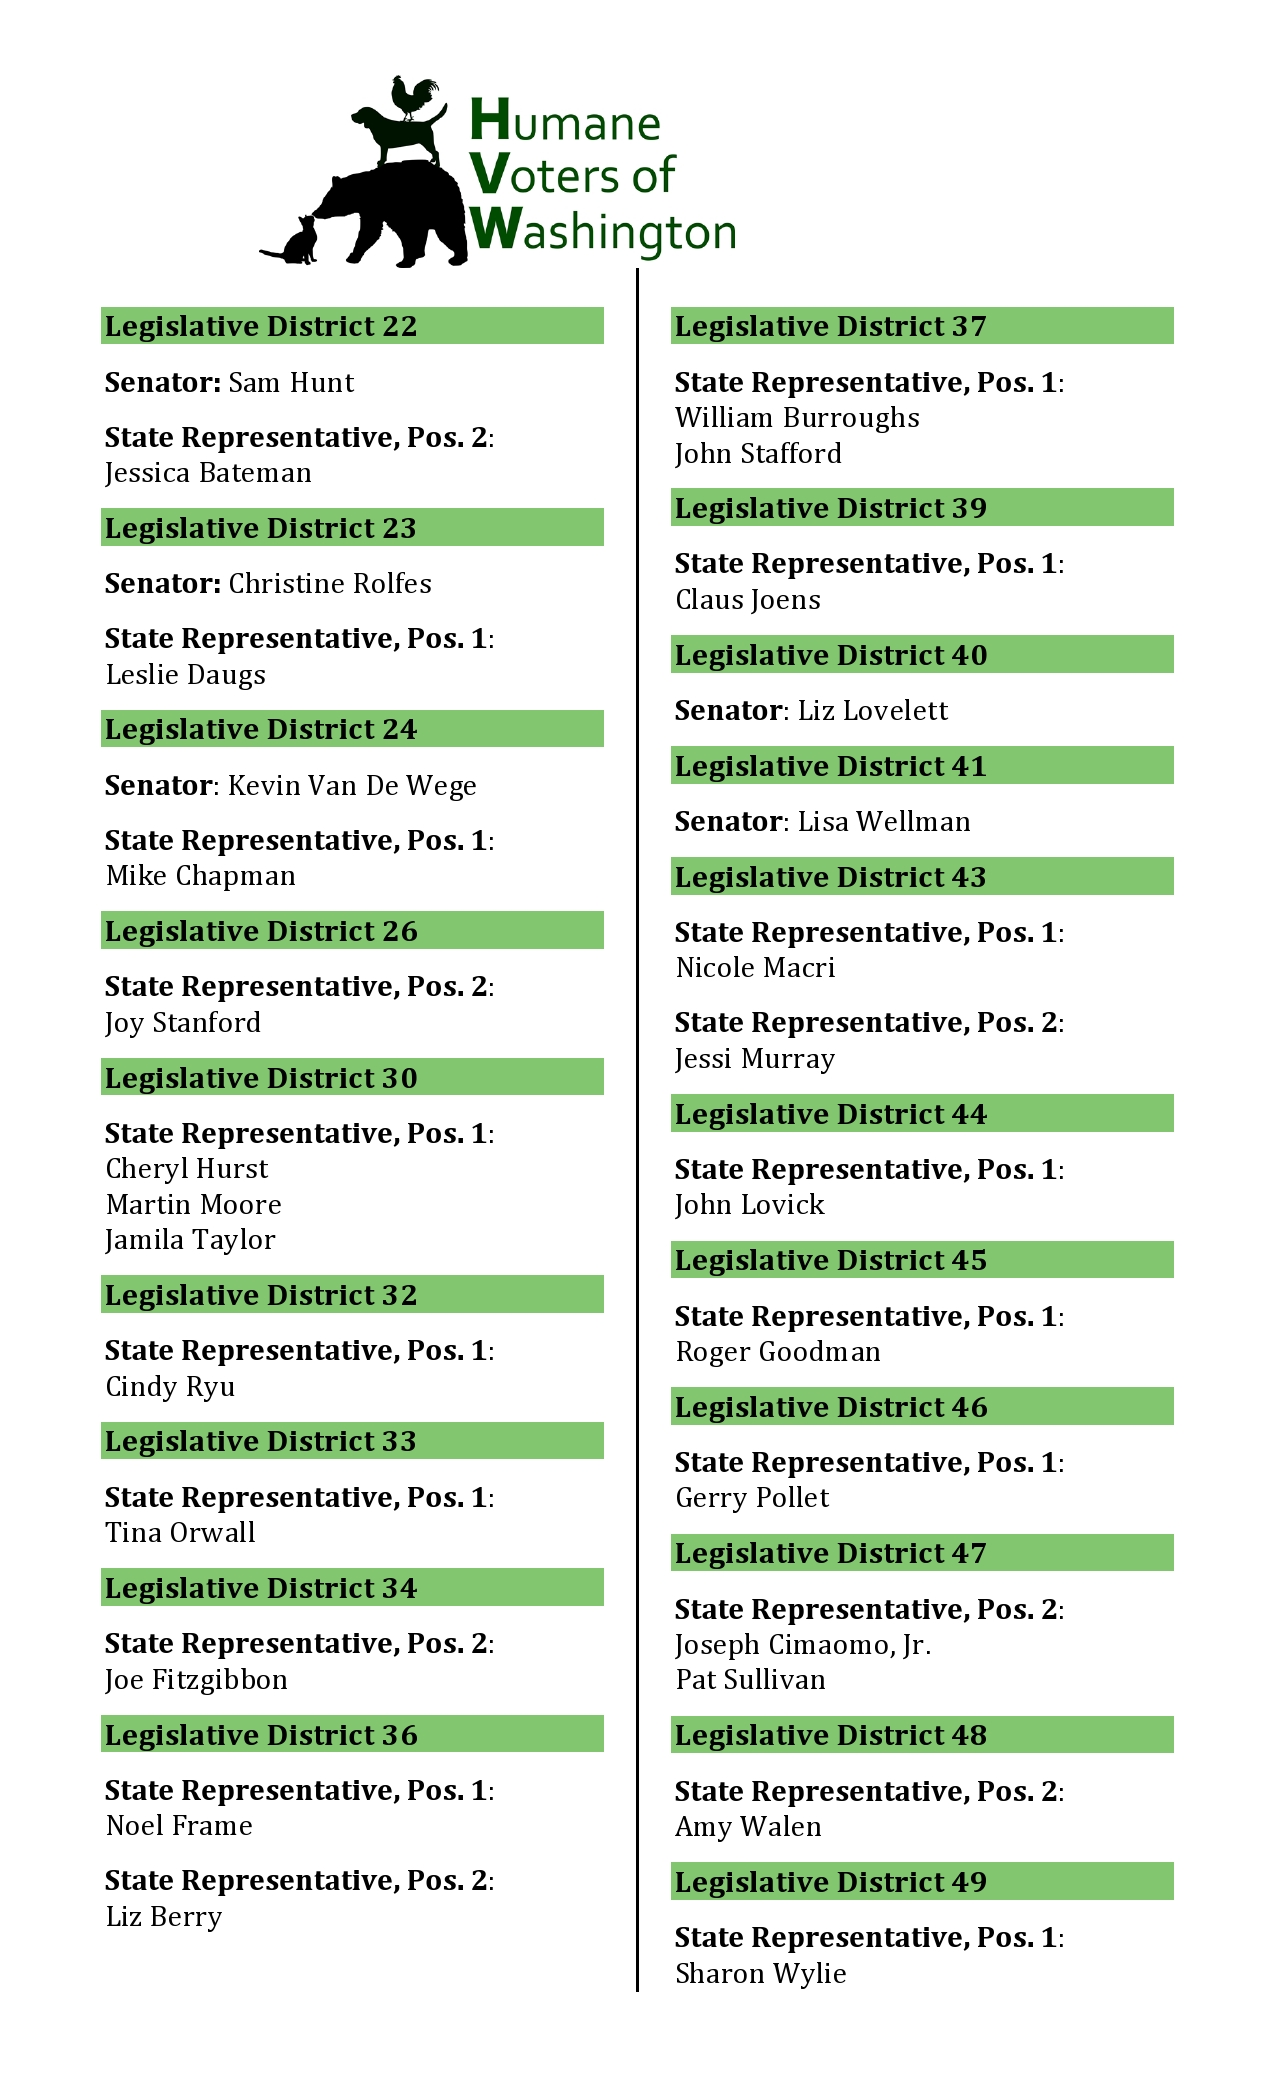 HVW 2020 Primary Election Guide 2